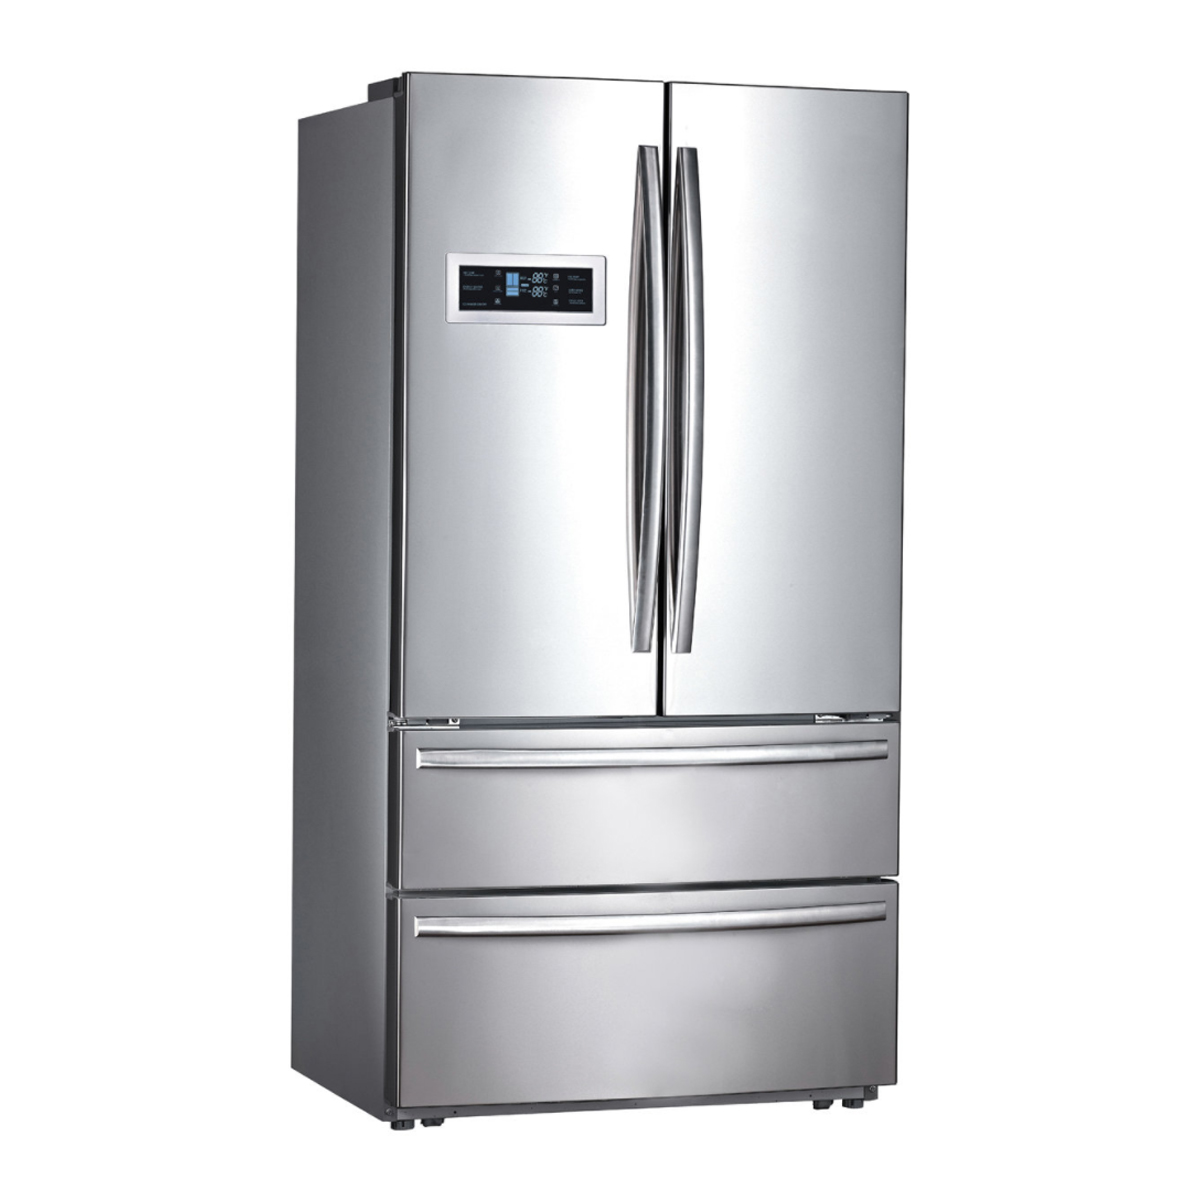 Teka NFM700X 635L French Door Fridge